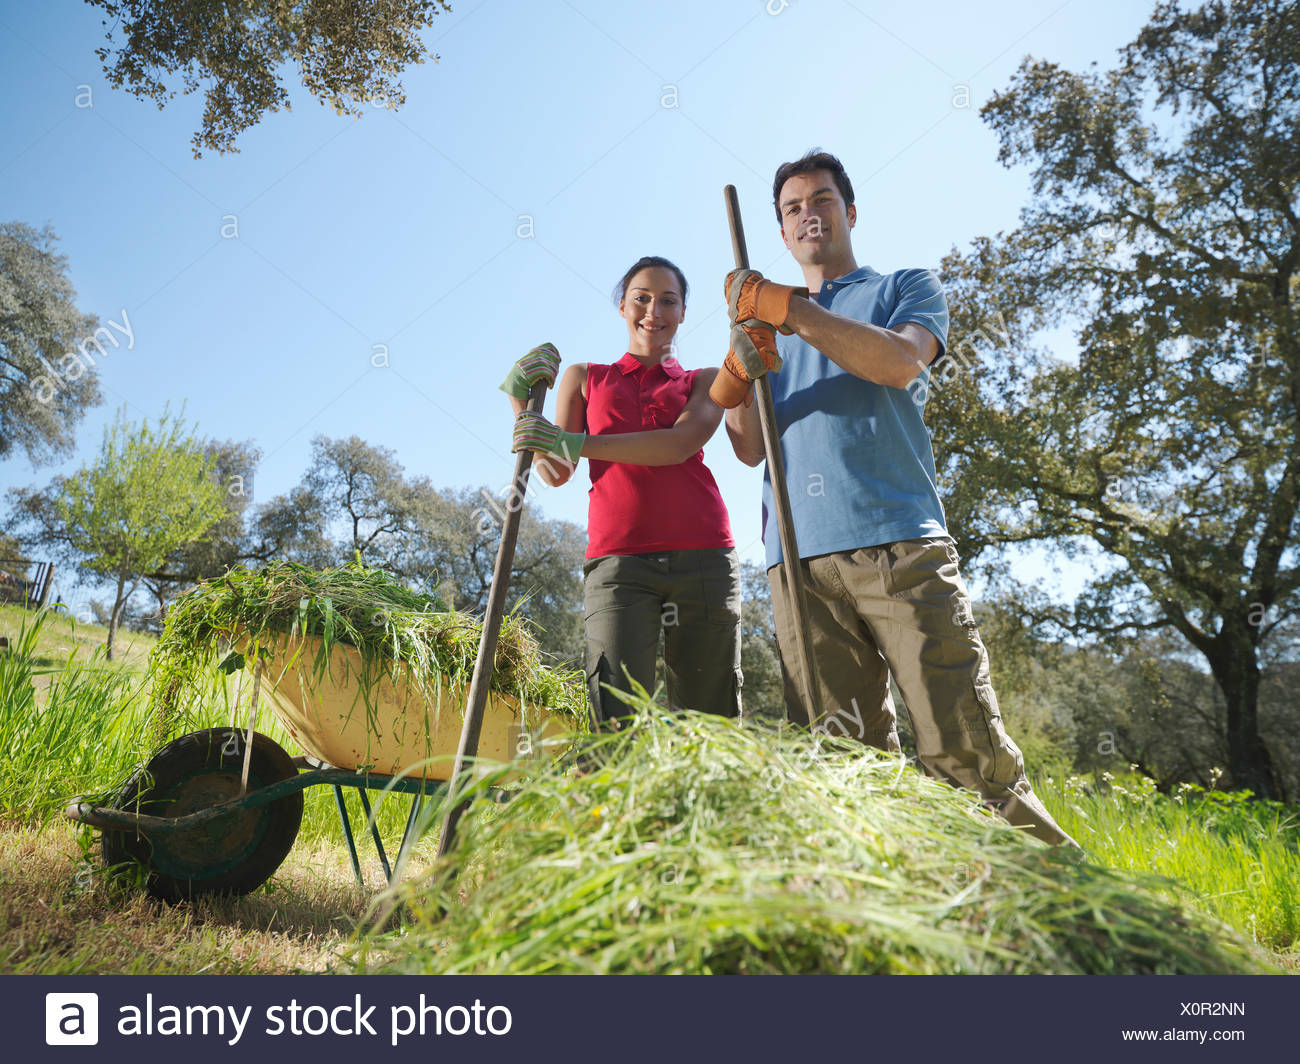 Man and woman in front of hay heap - Stock Image